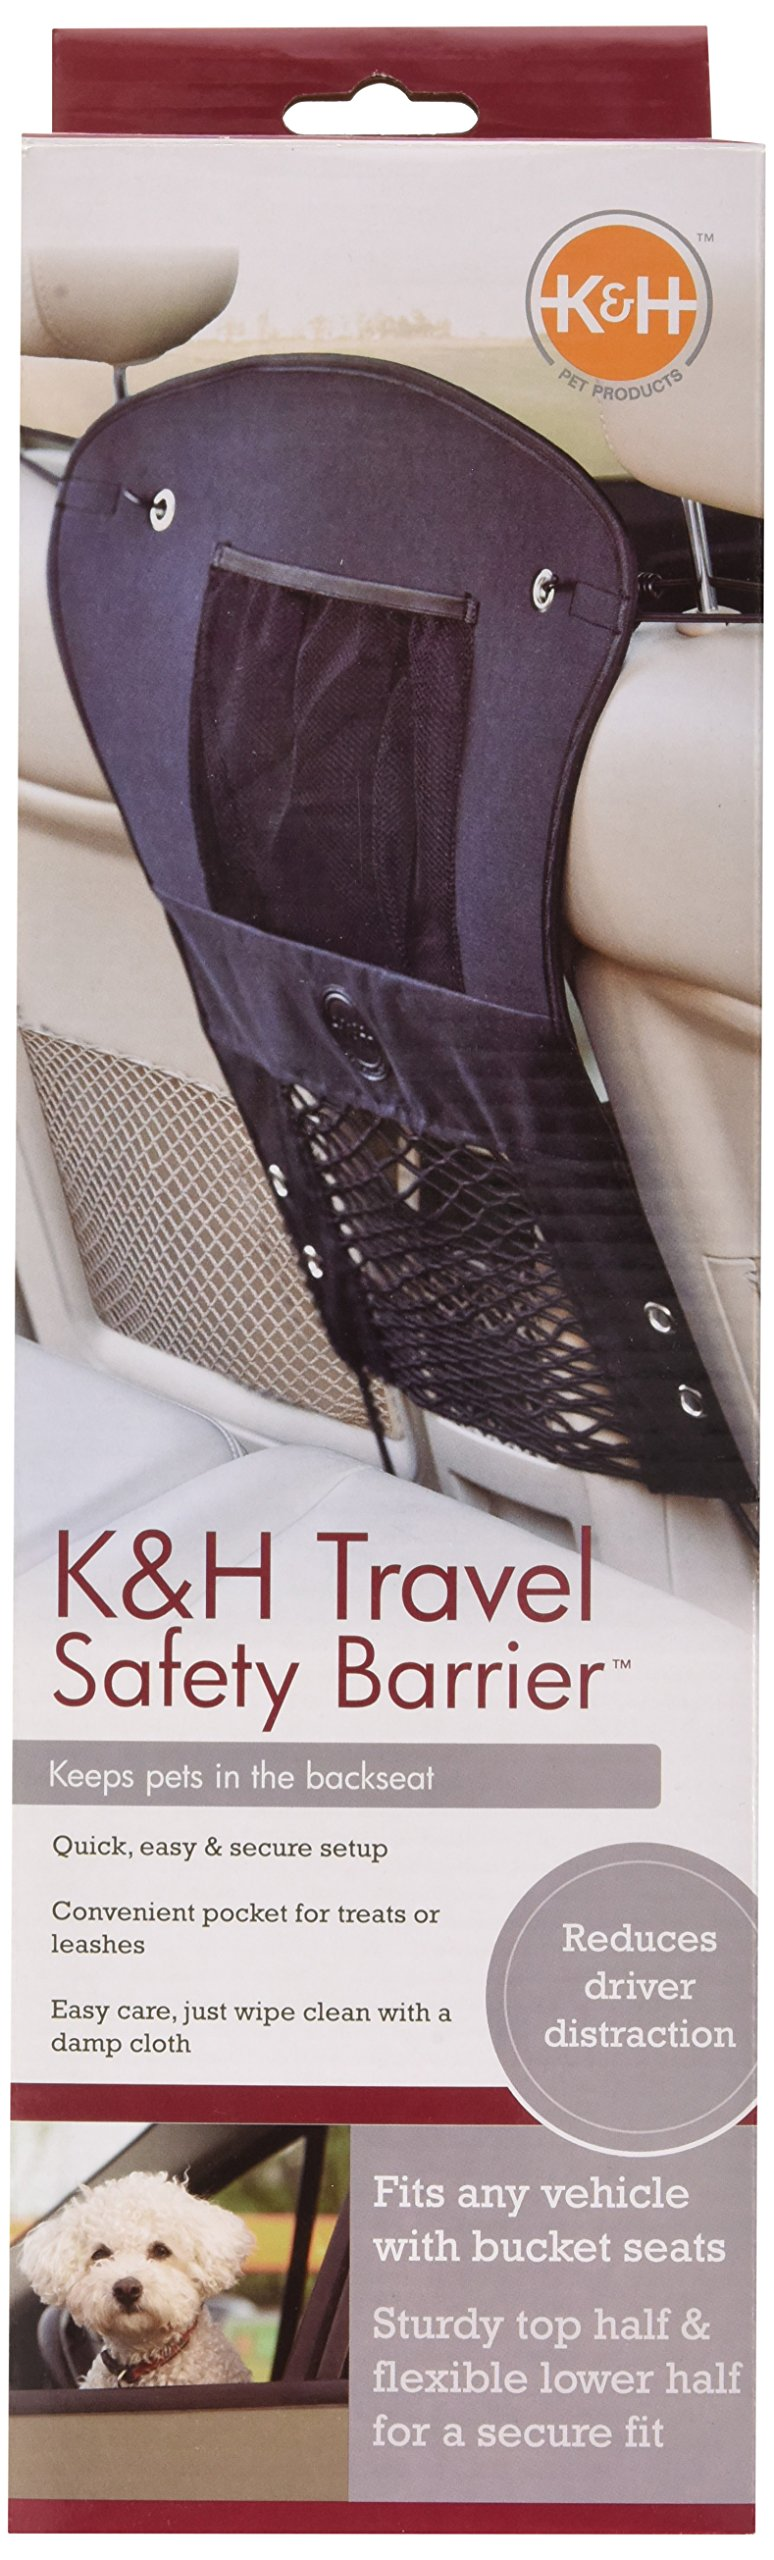 K&H Pet Products Travel Safety Barrier Black 23'' x 24'' by K&H Pet Products (Image #2)